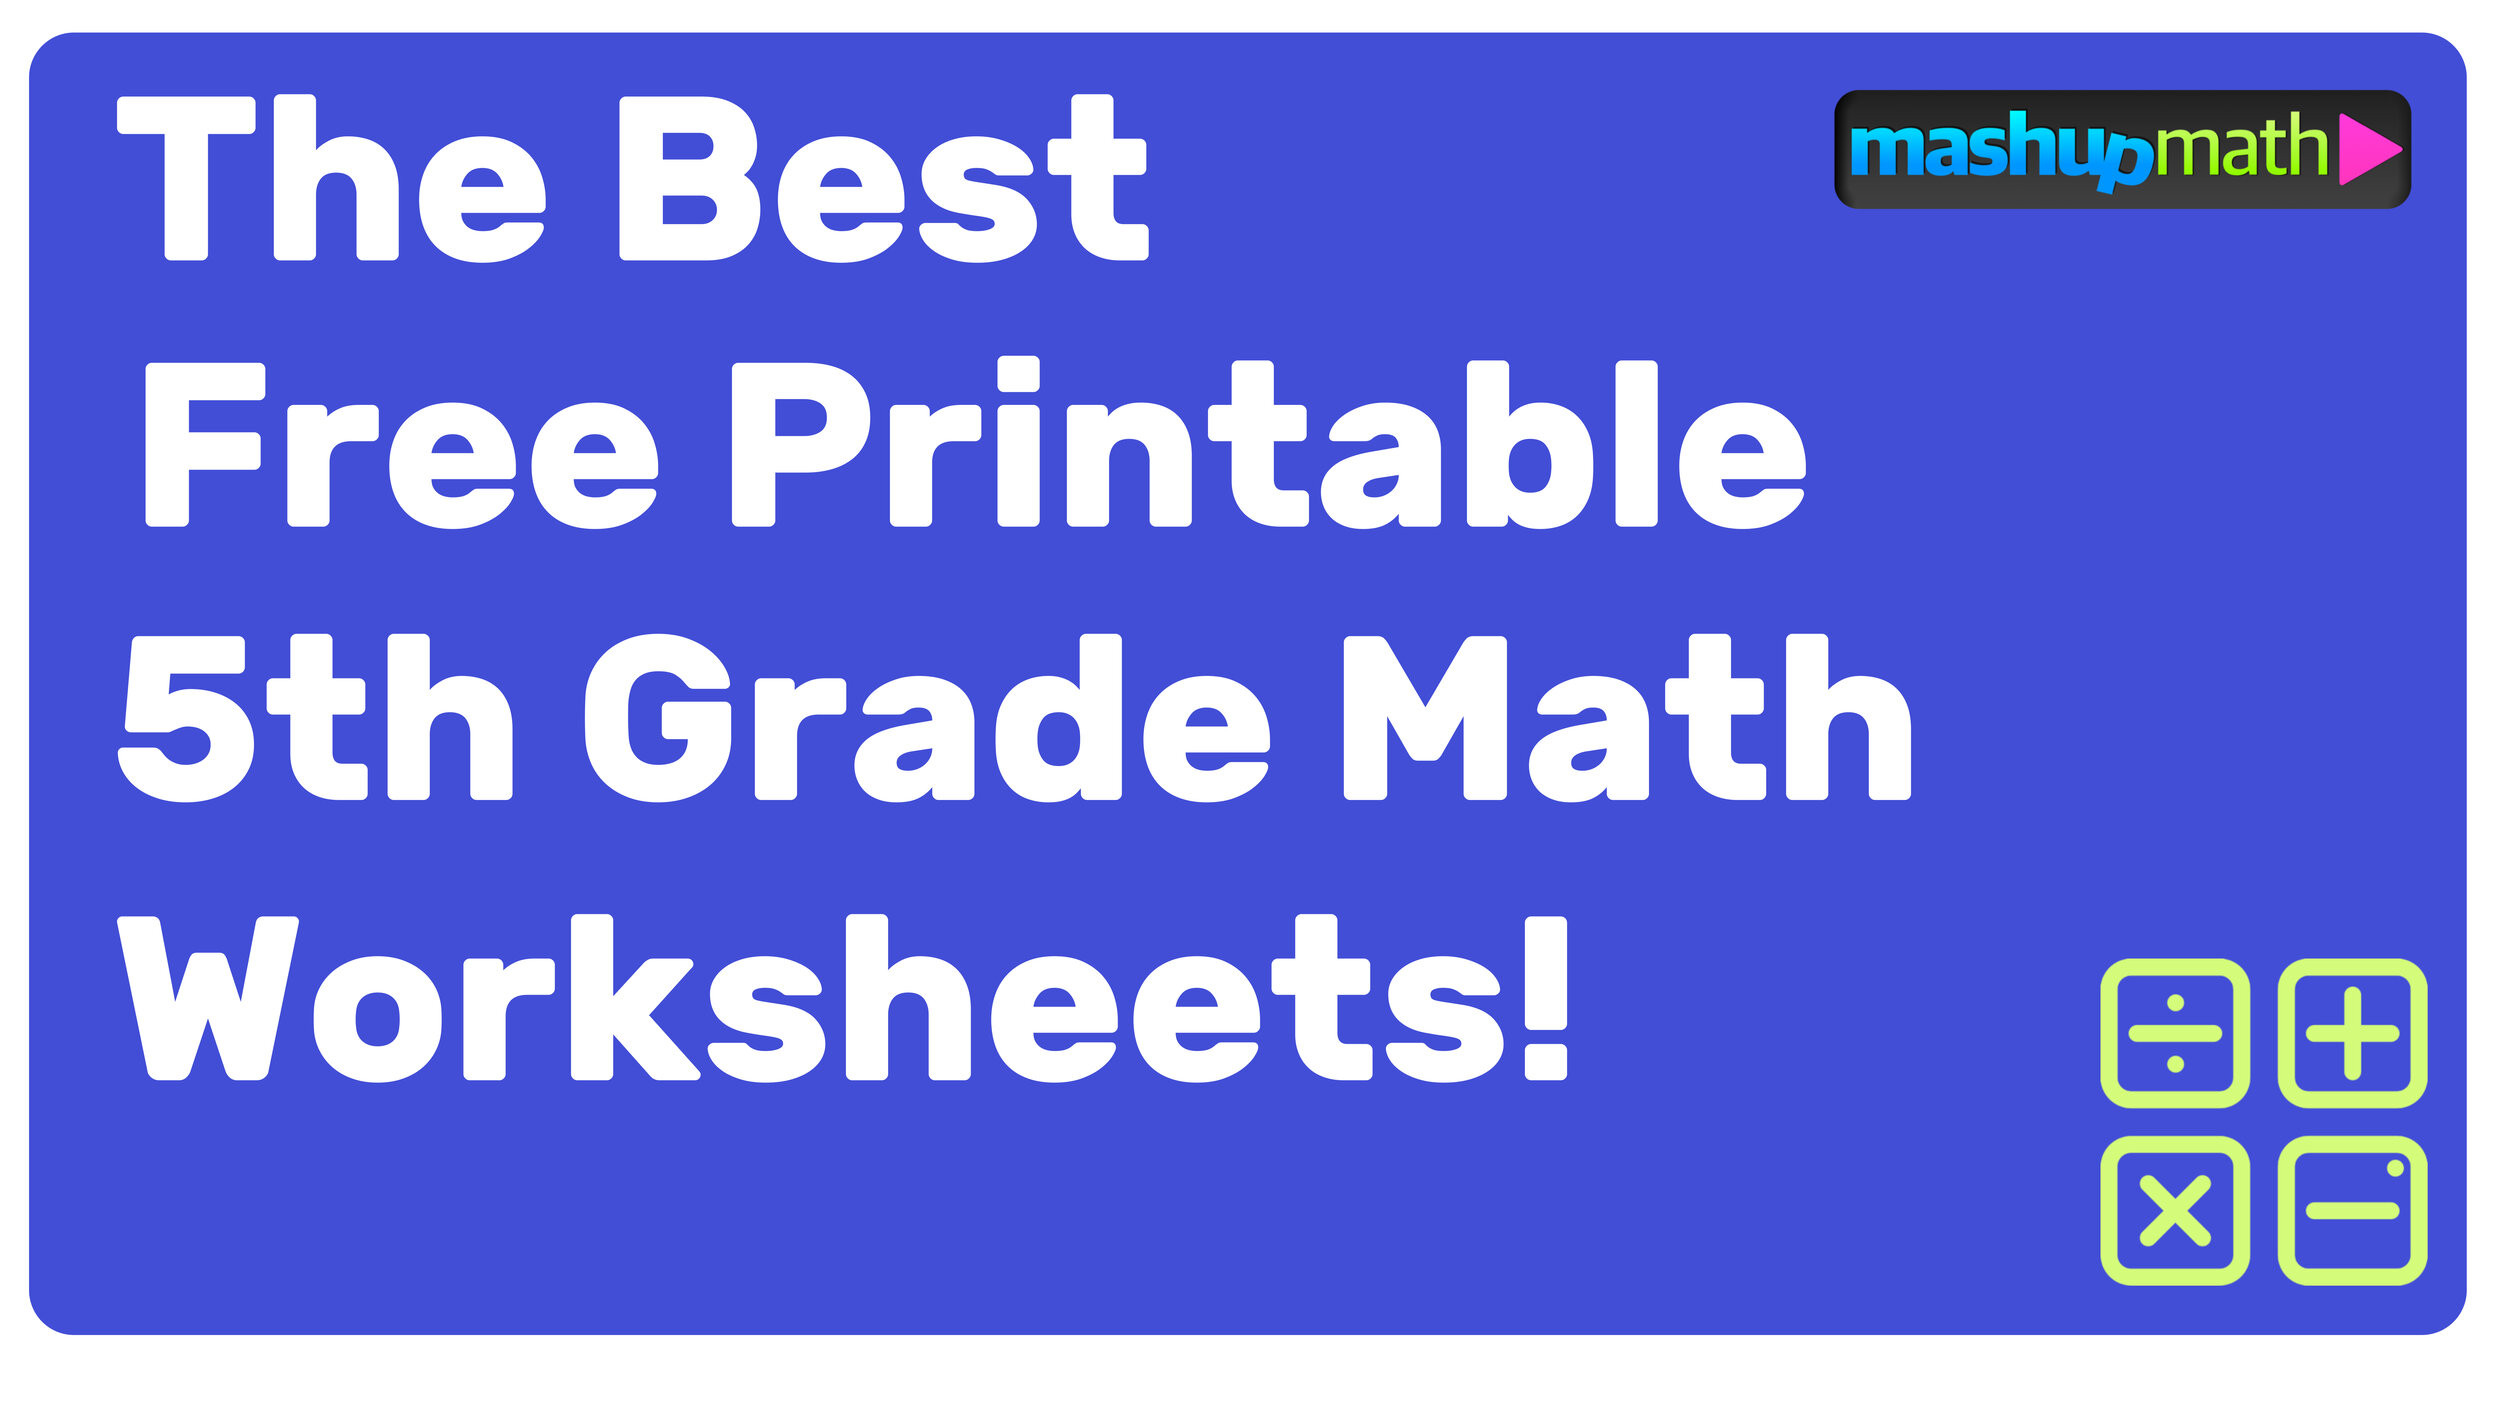 Math 5th Grade Worksheets Free Printable 5th Grade Math Worksheets with Answers